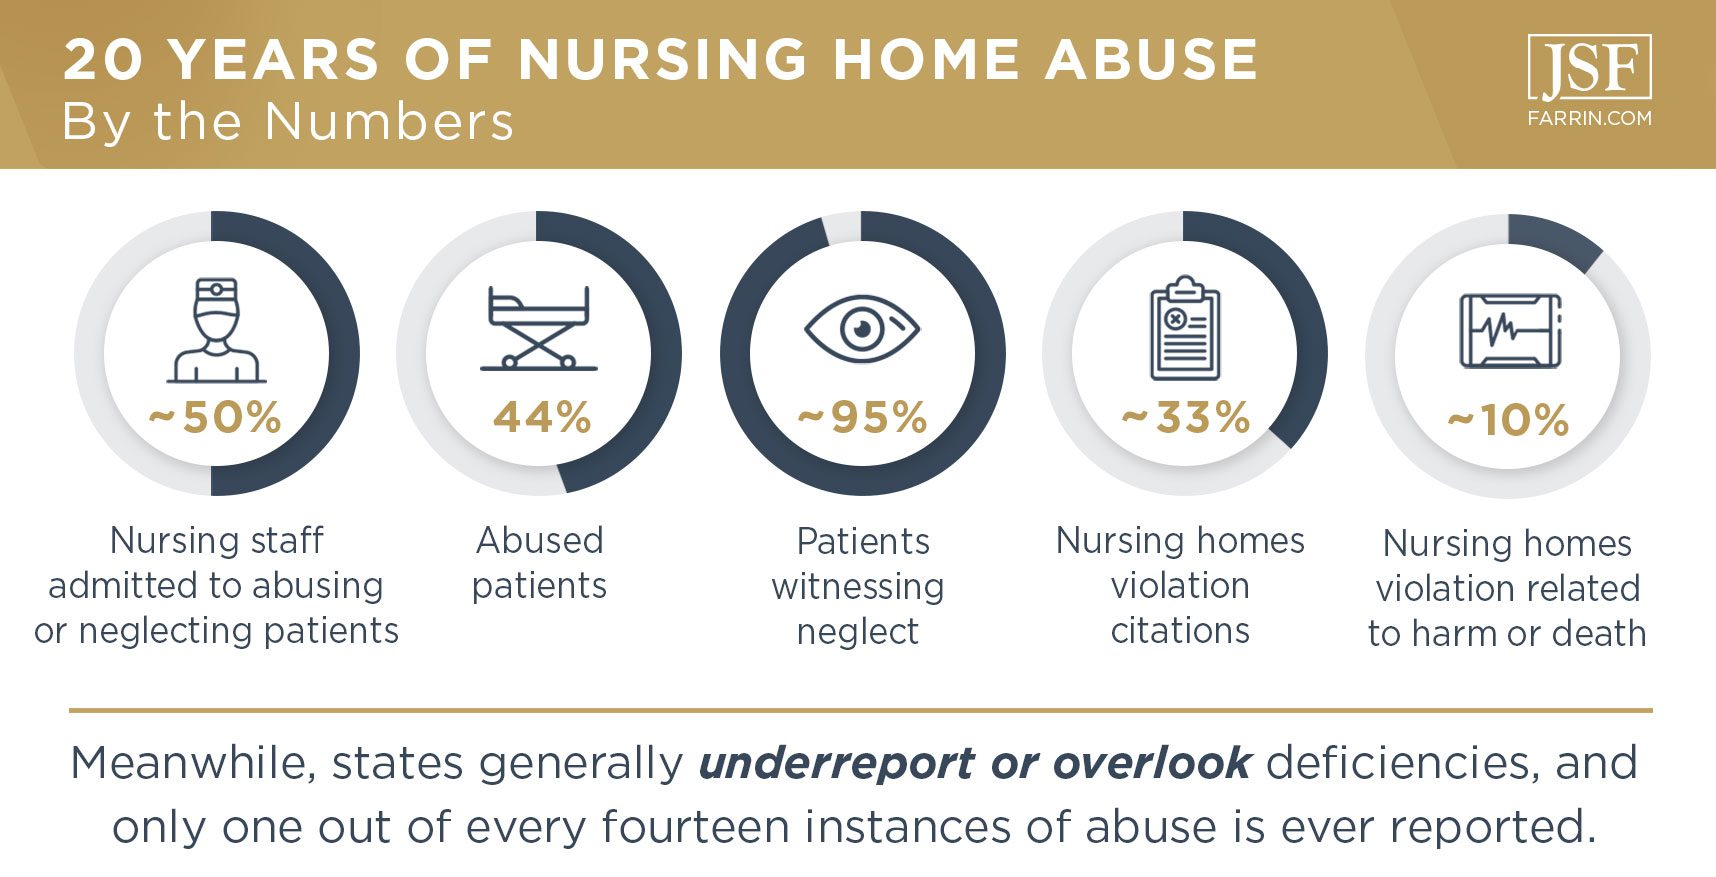 Stats on nursing home abuse. States usually underreport or overlook deficiencies.